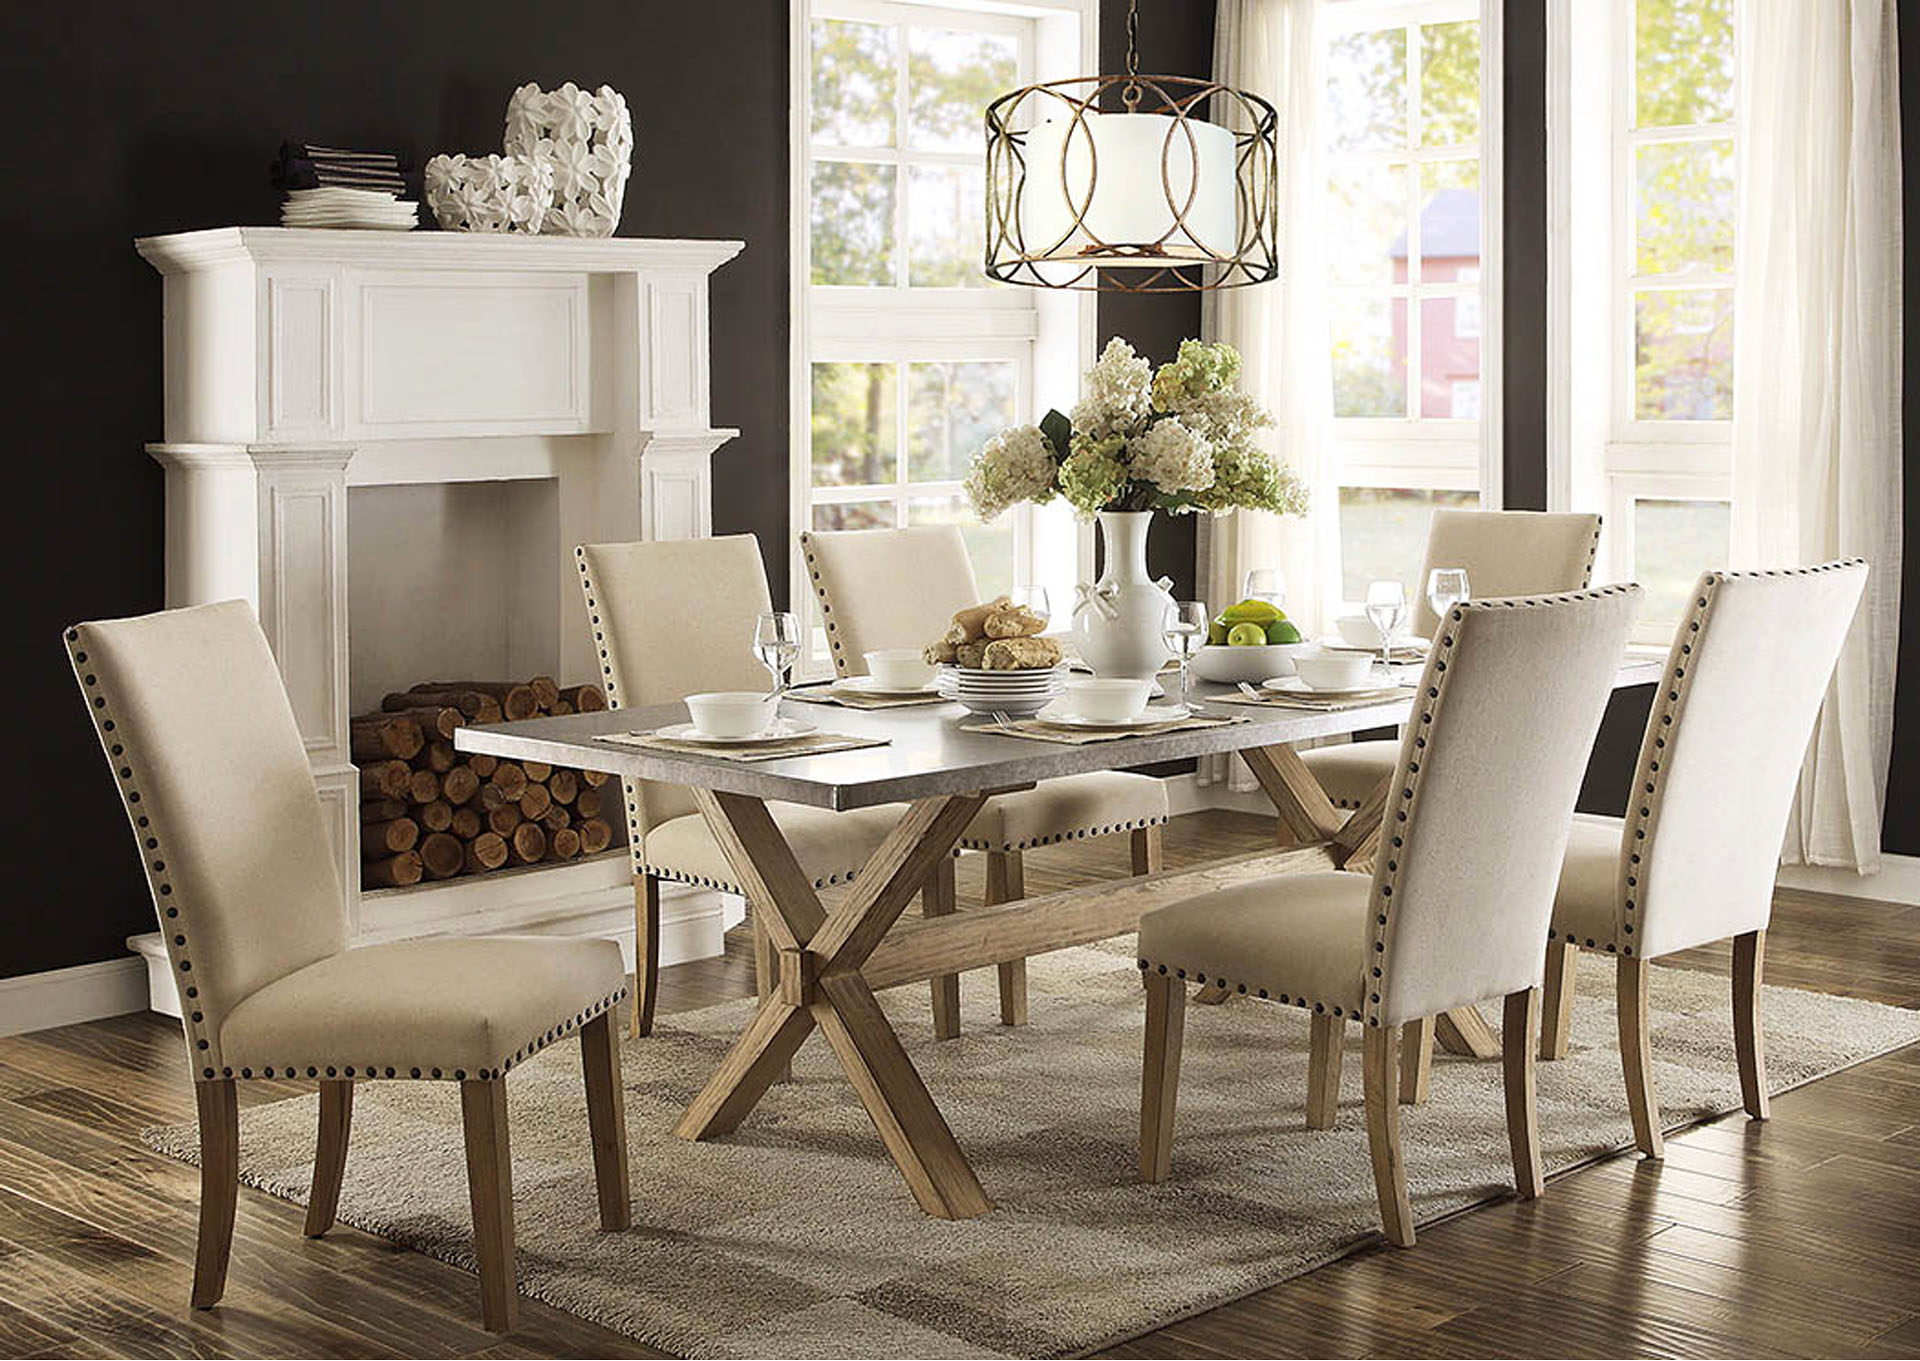 Peaceful Living Furniture Luella 84 Weathered Oak Dining Table w